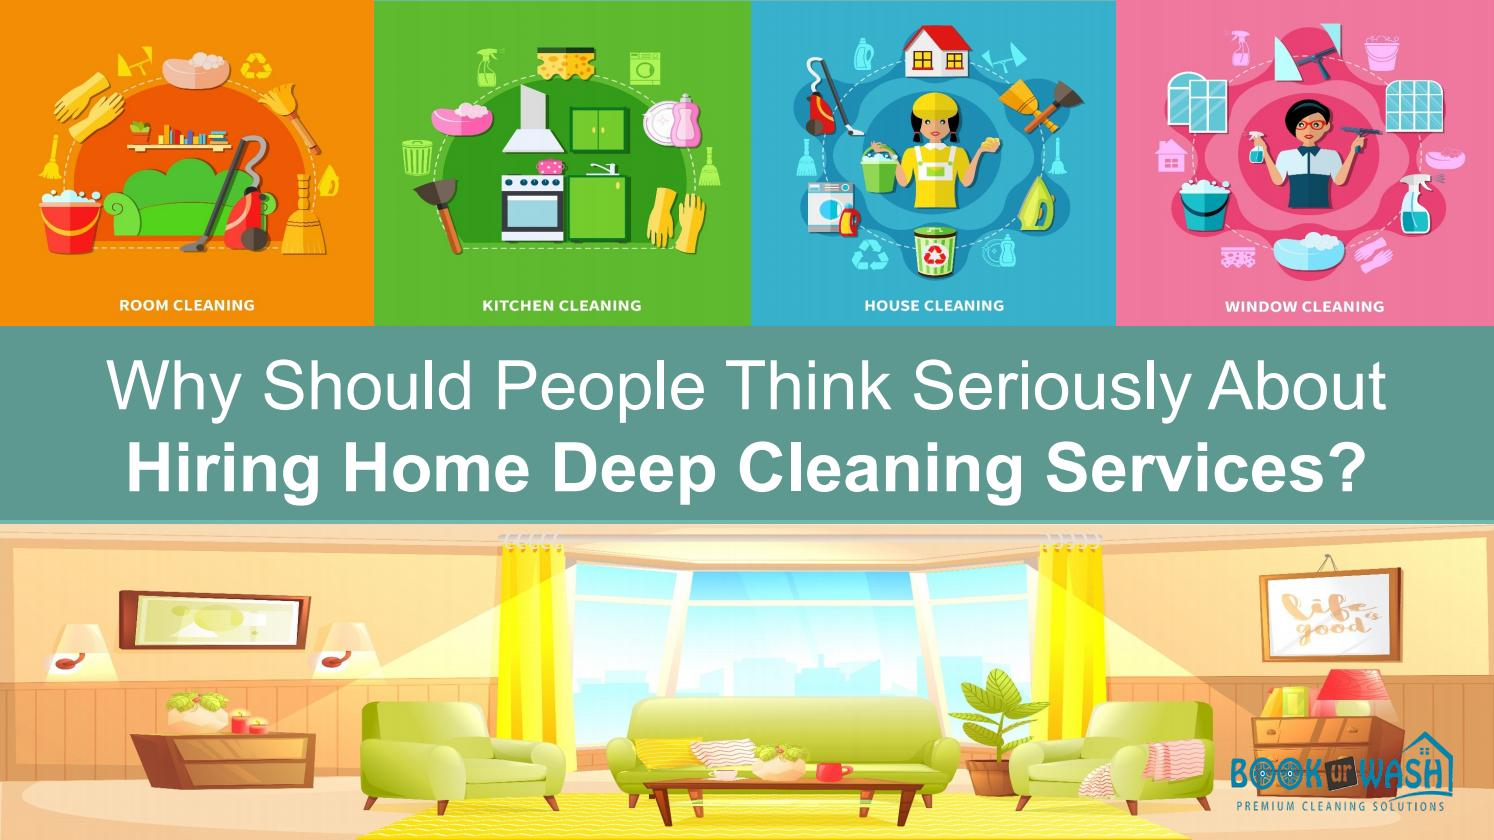 Why Should People Think Seriously About Hiring Home Deep